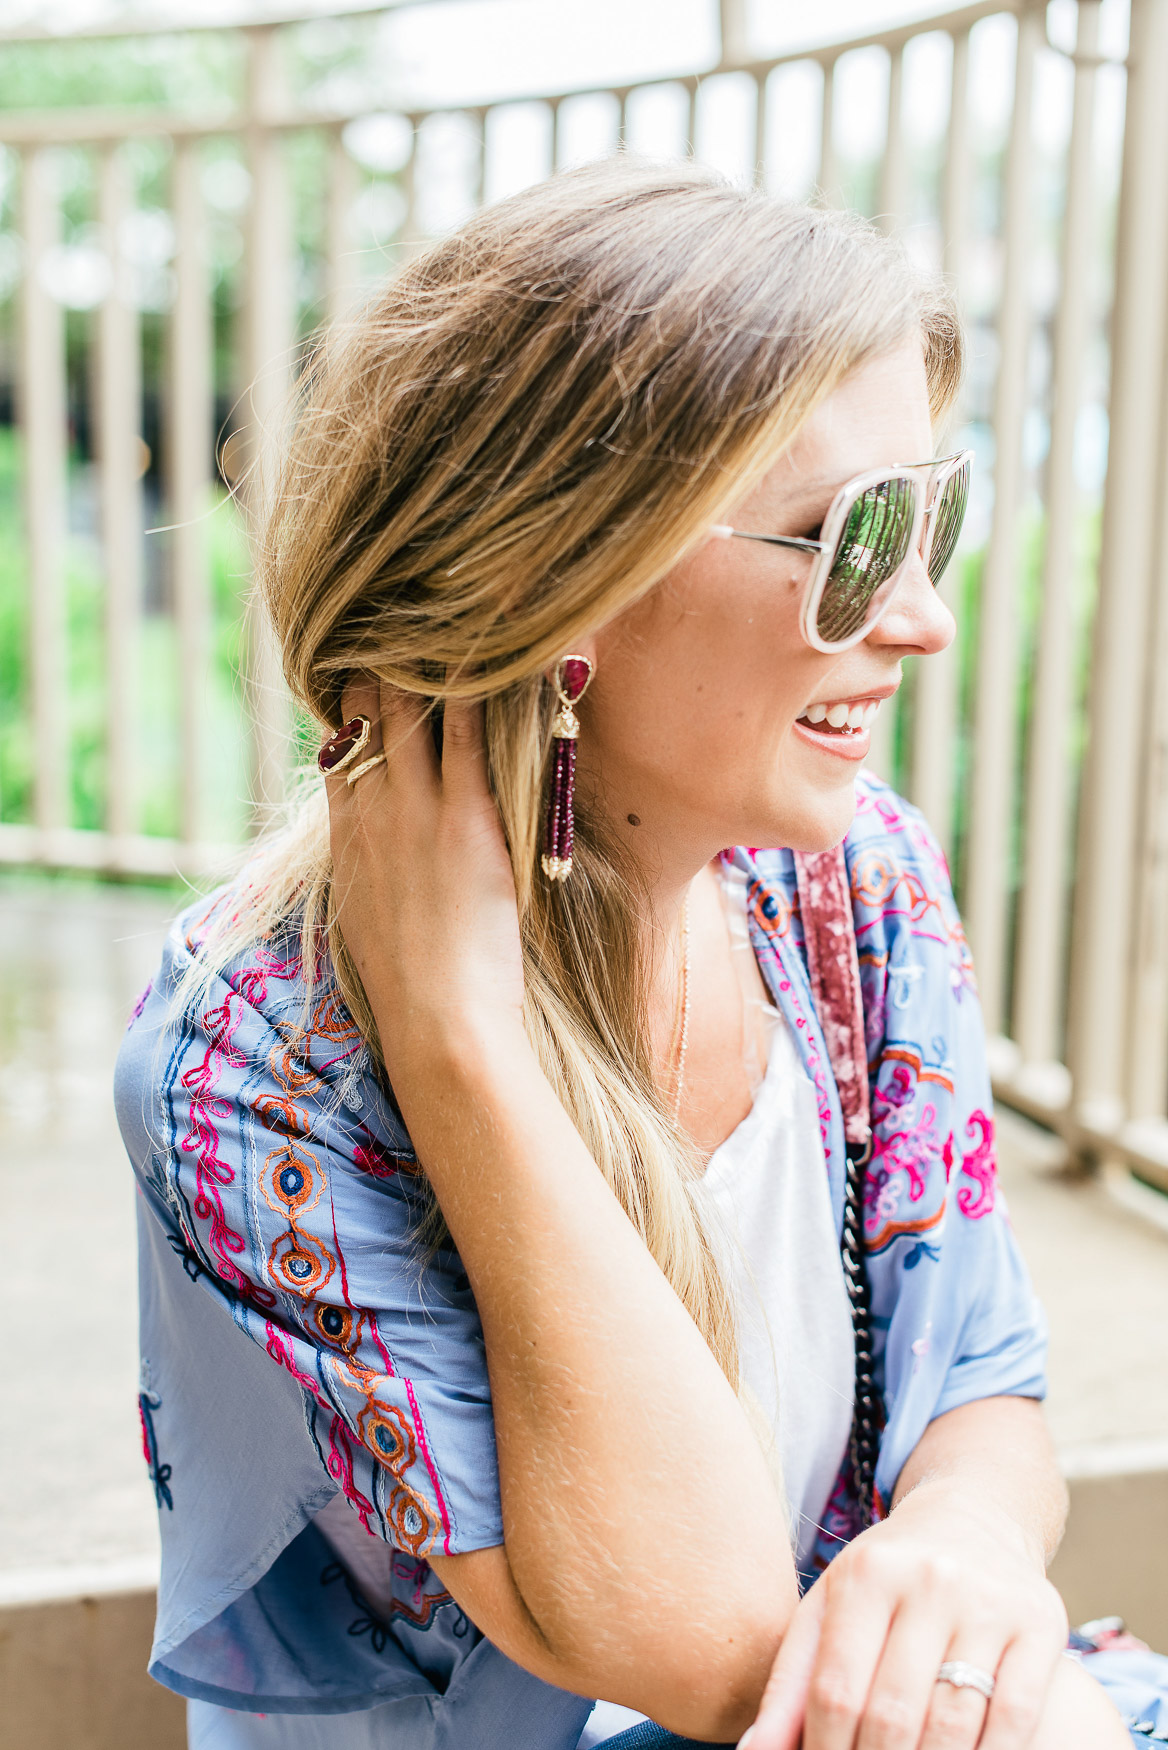 KENDRA SCOTT EARRINGS FOR FALL